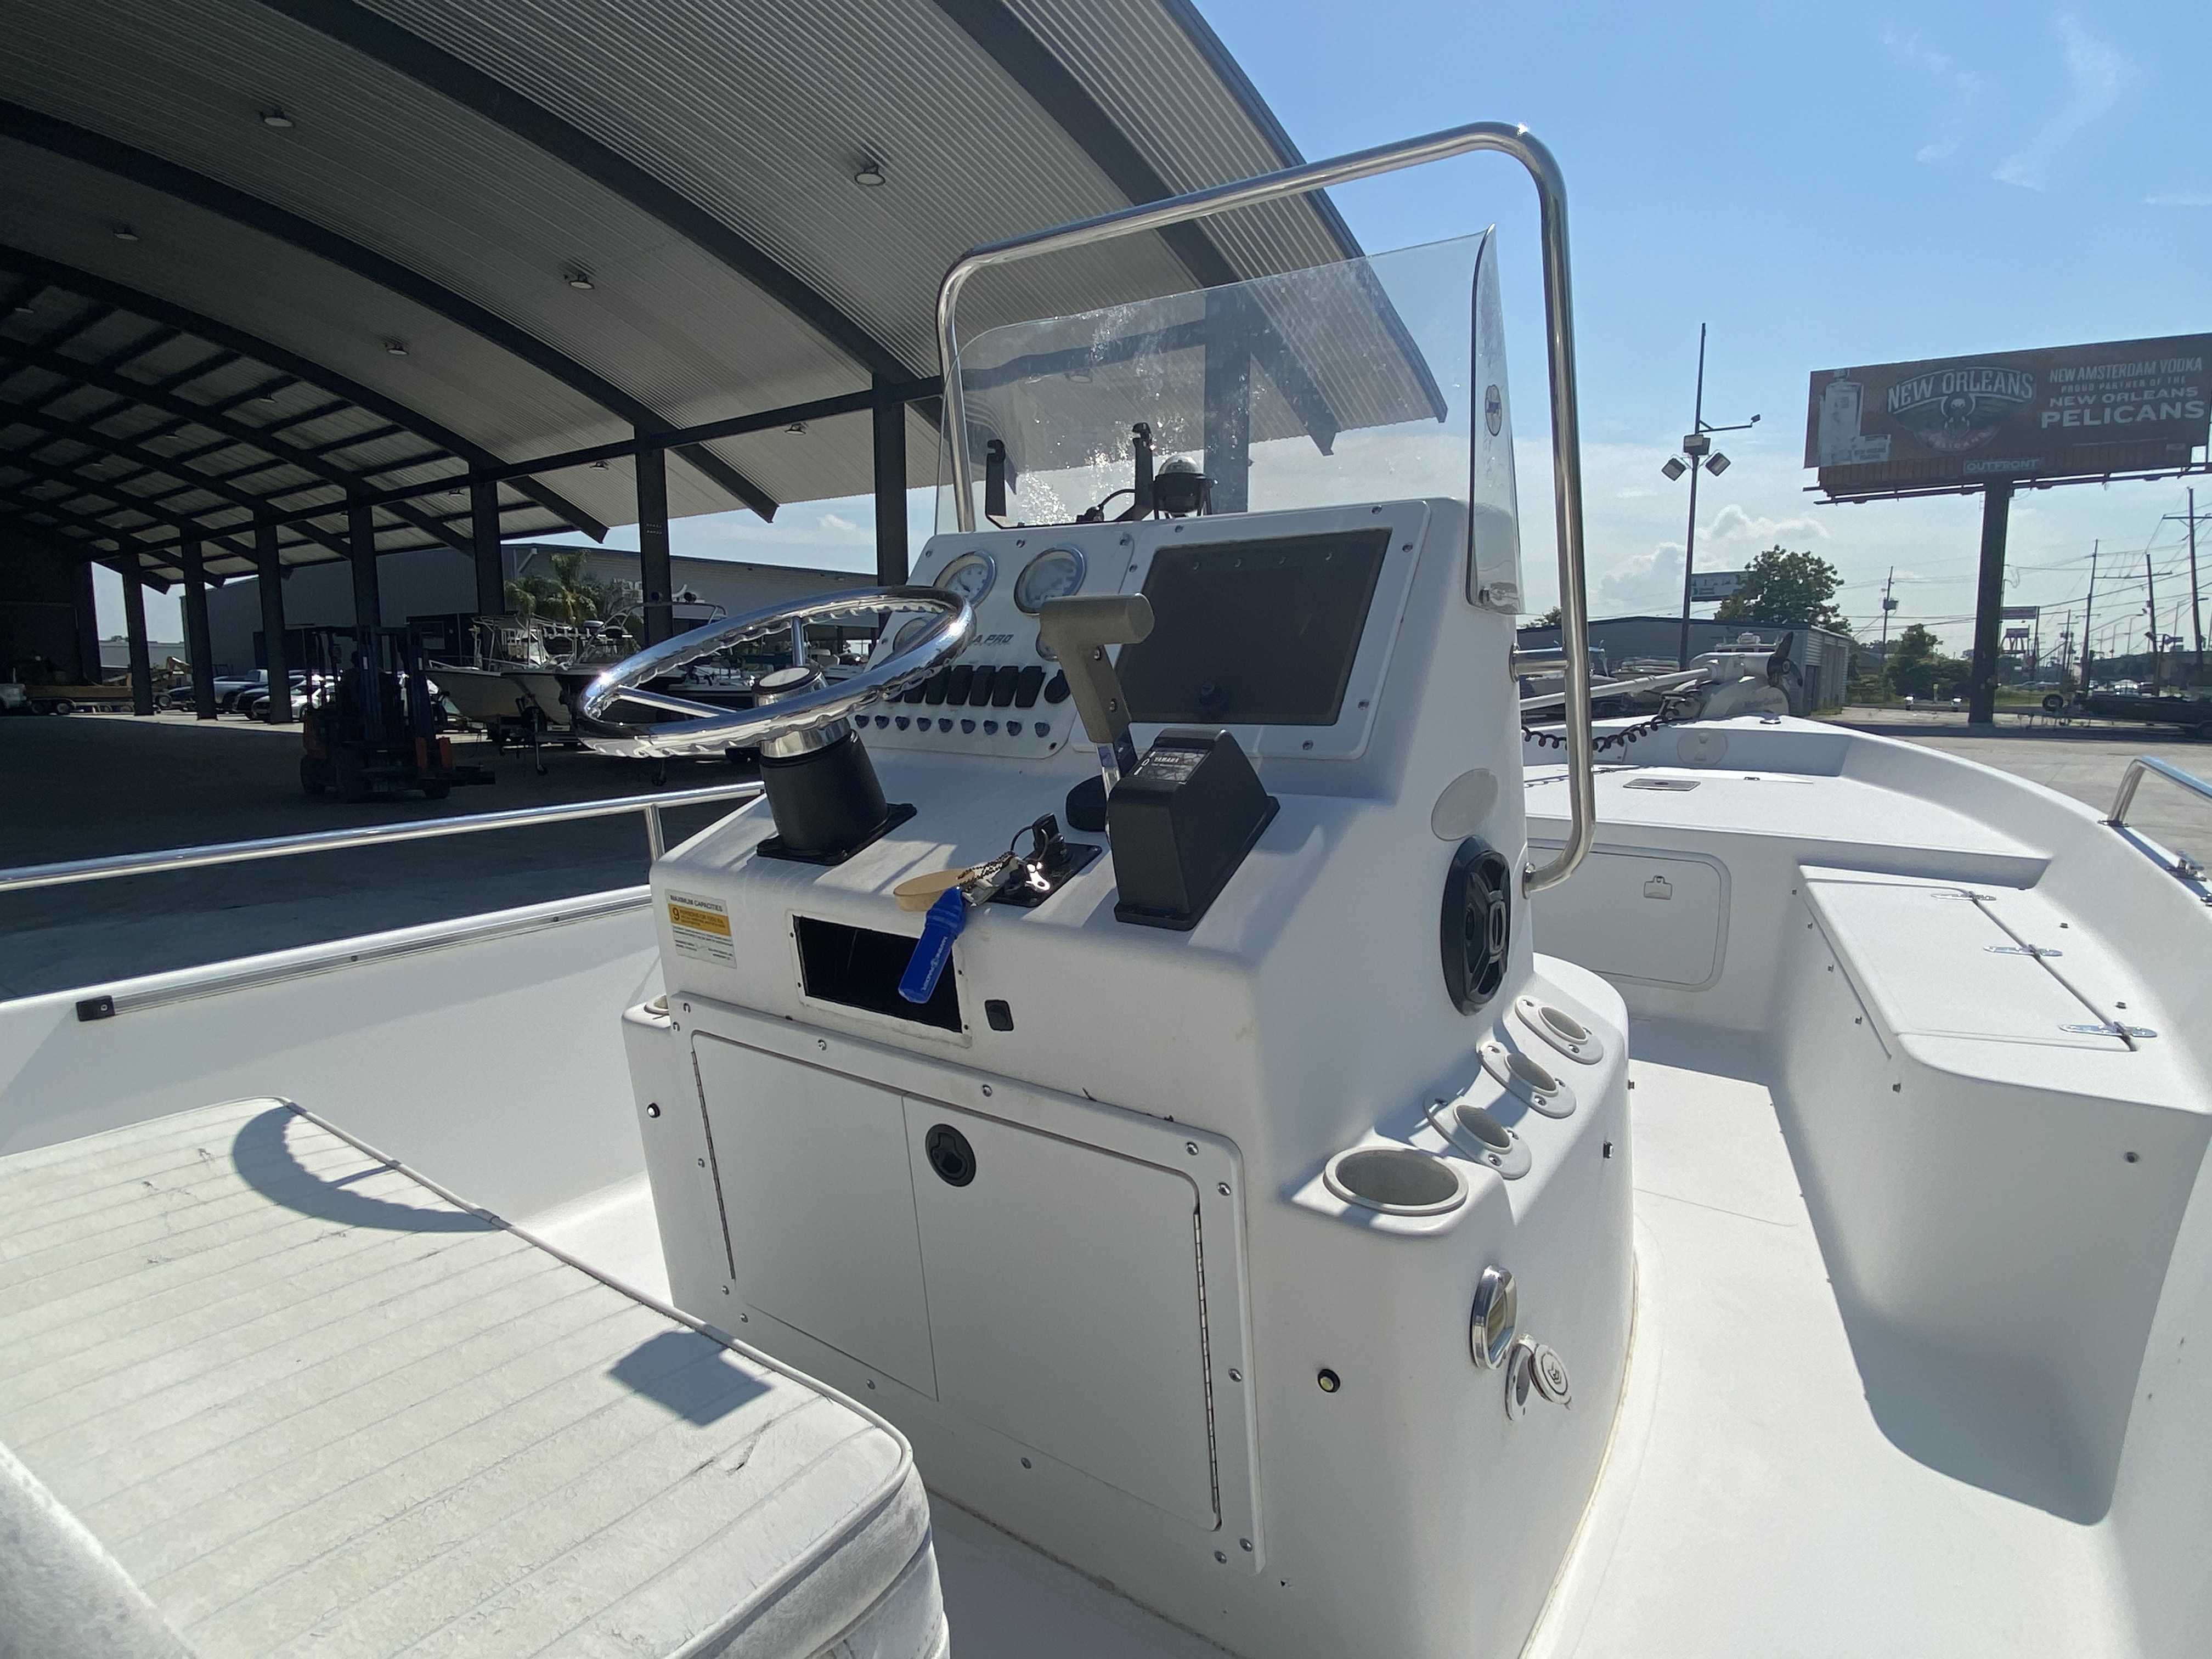 2003 Sea Pro boat for sale, model of the boat is SV2100 & Image # 8 of 12